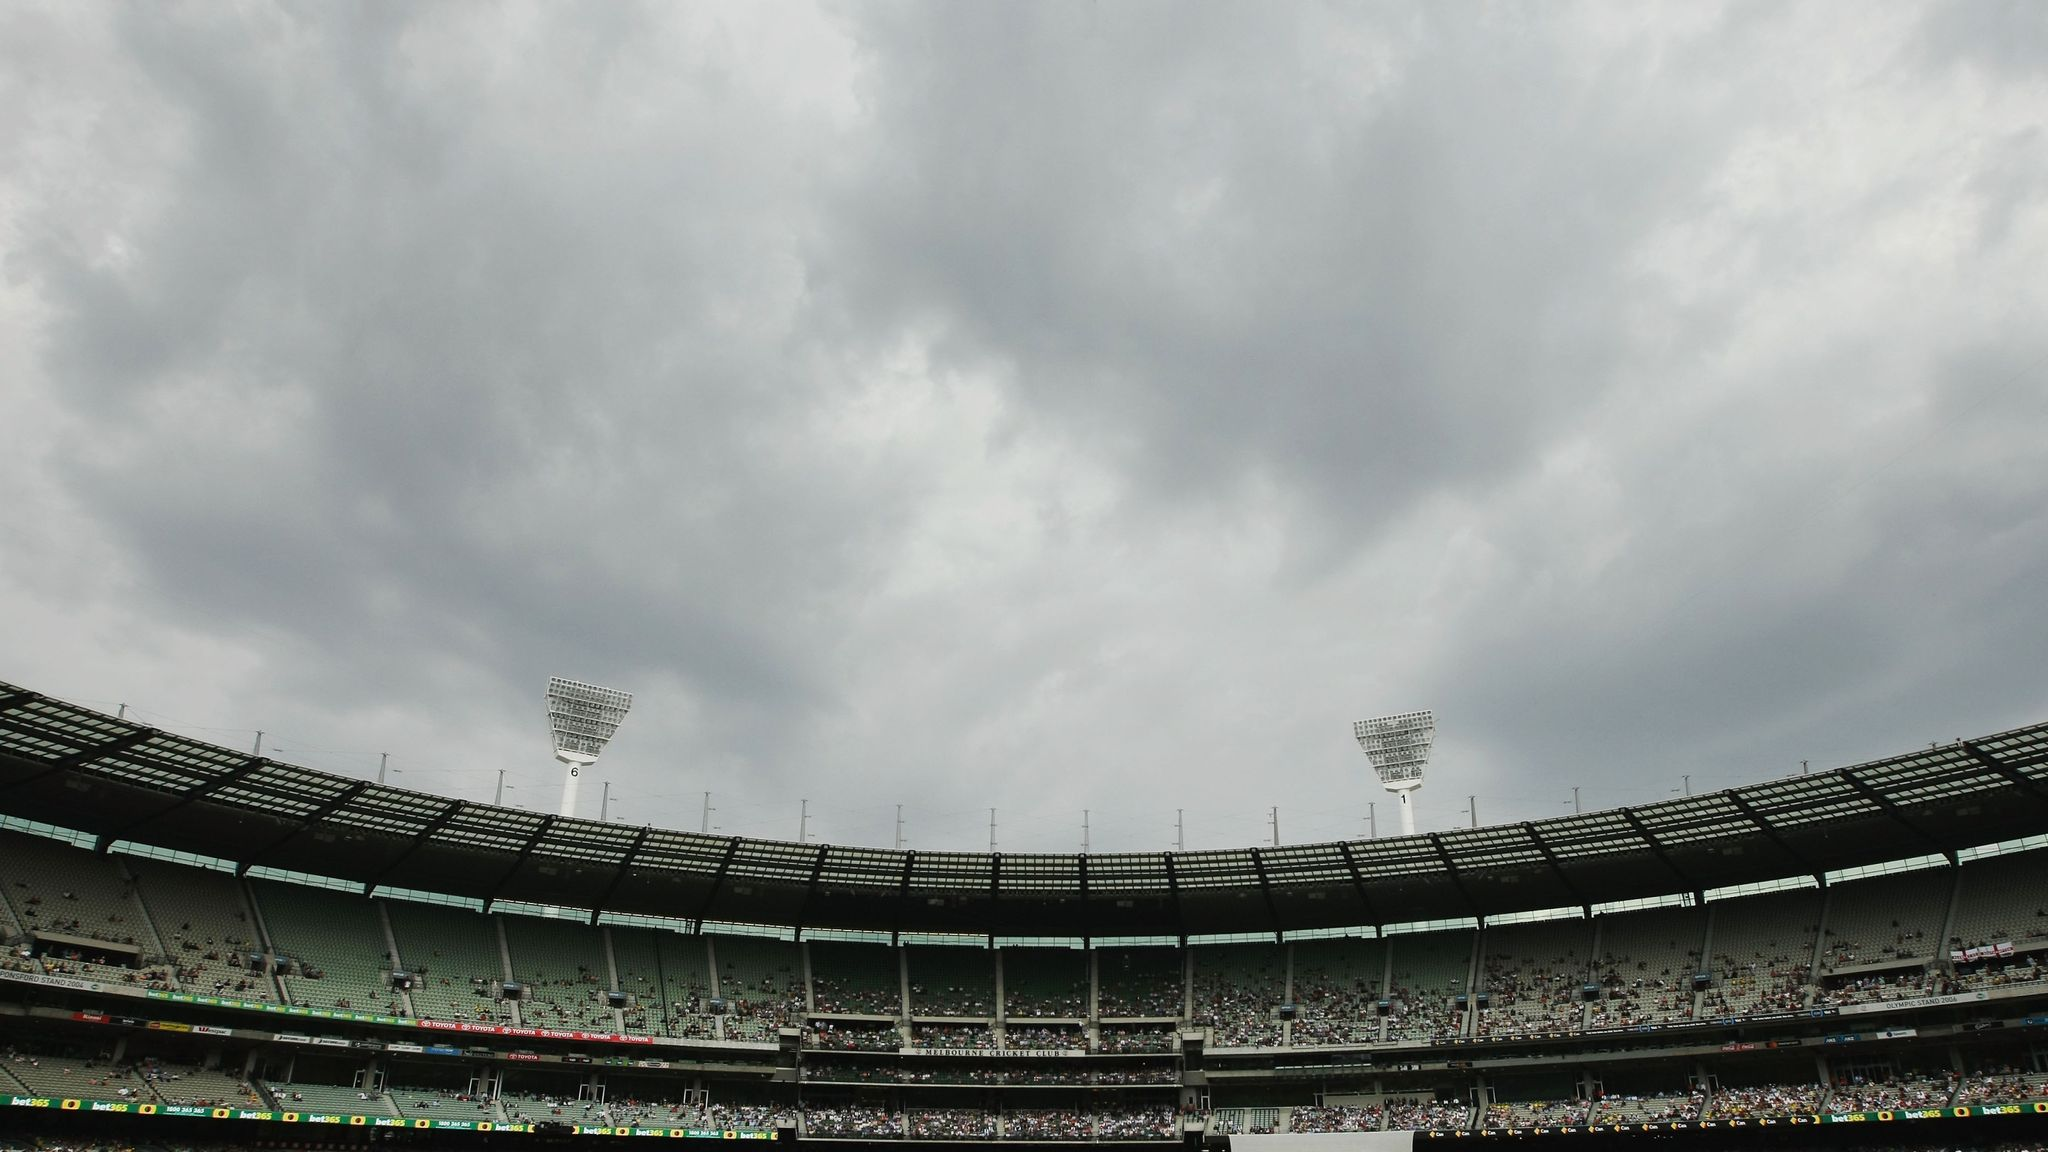 Melbourne Cricket Ground warned by ICC over poor Ashes pitch